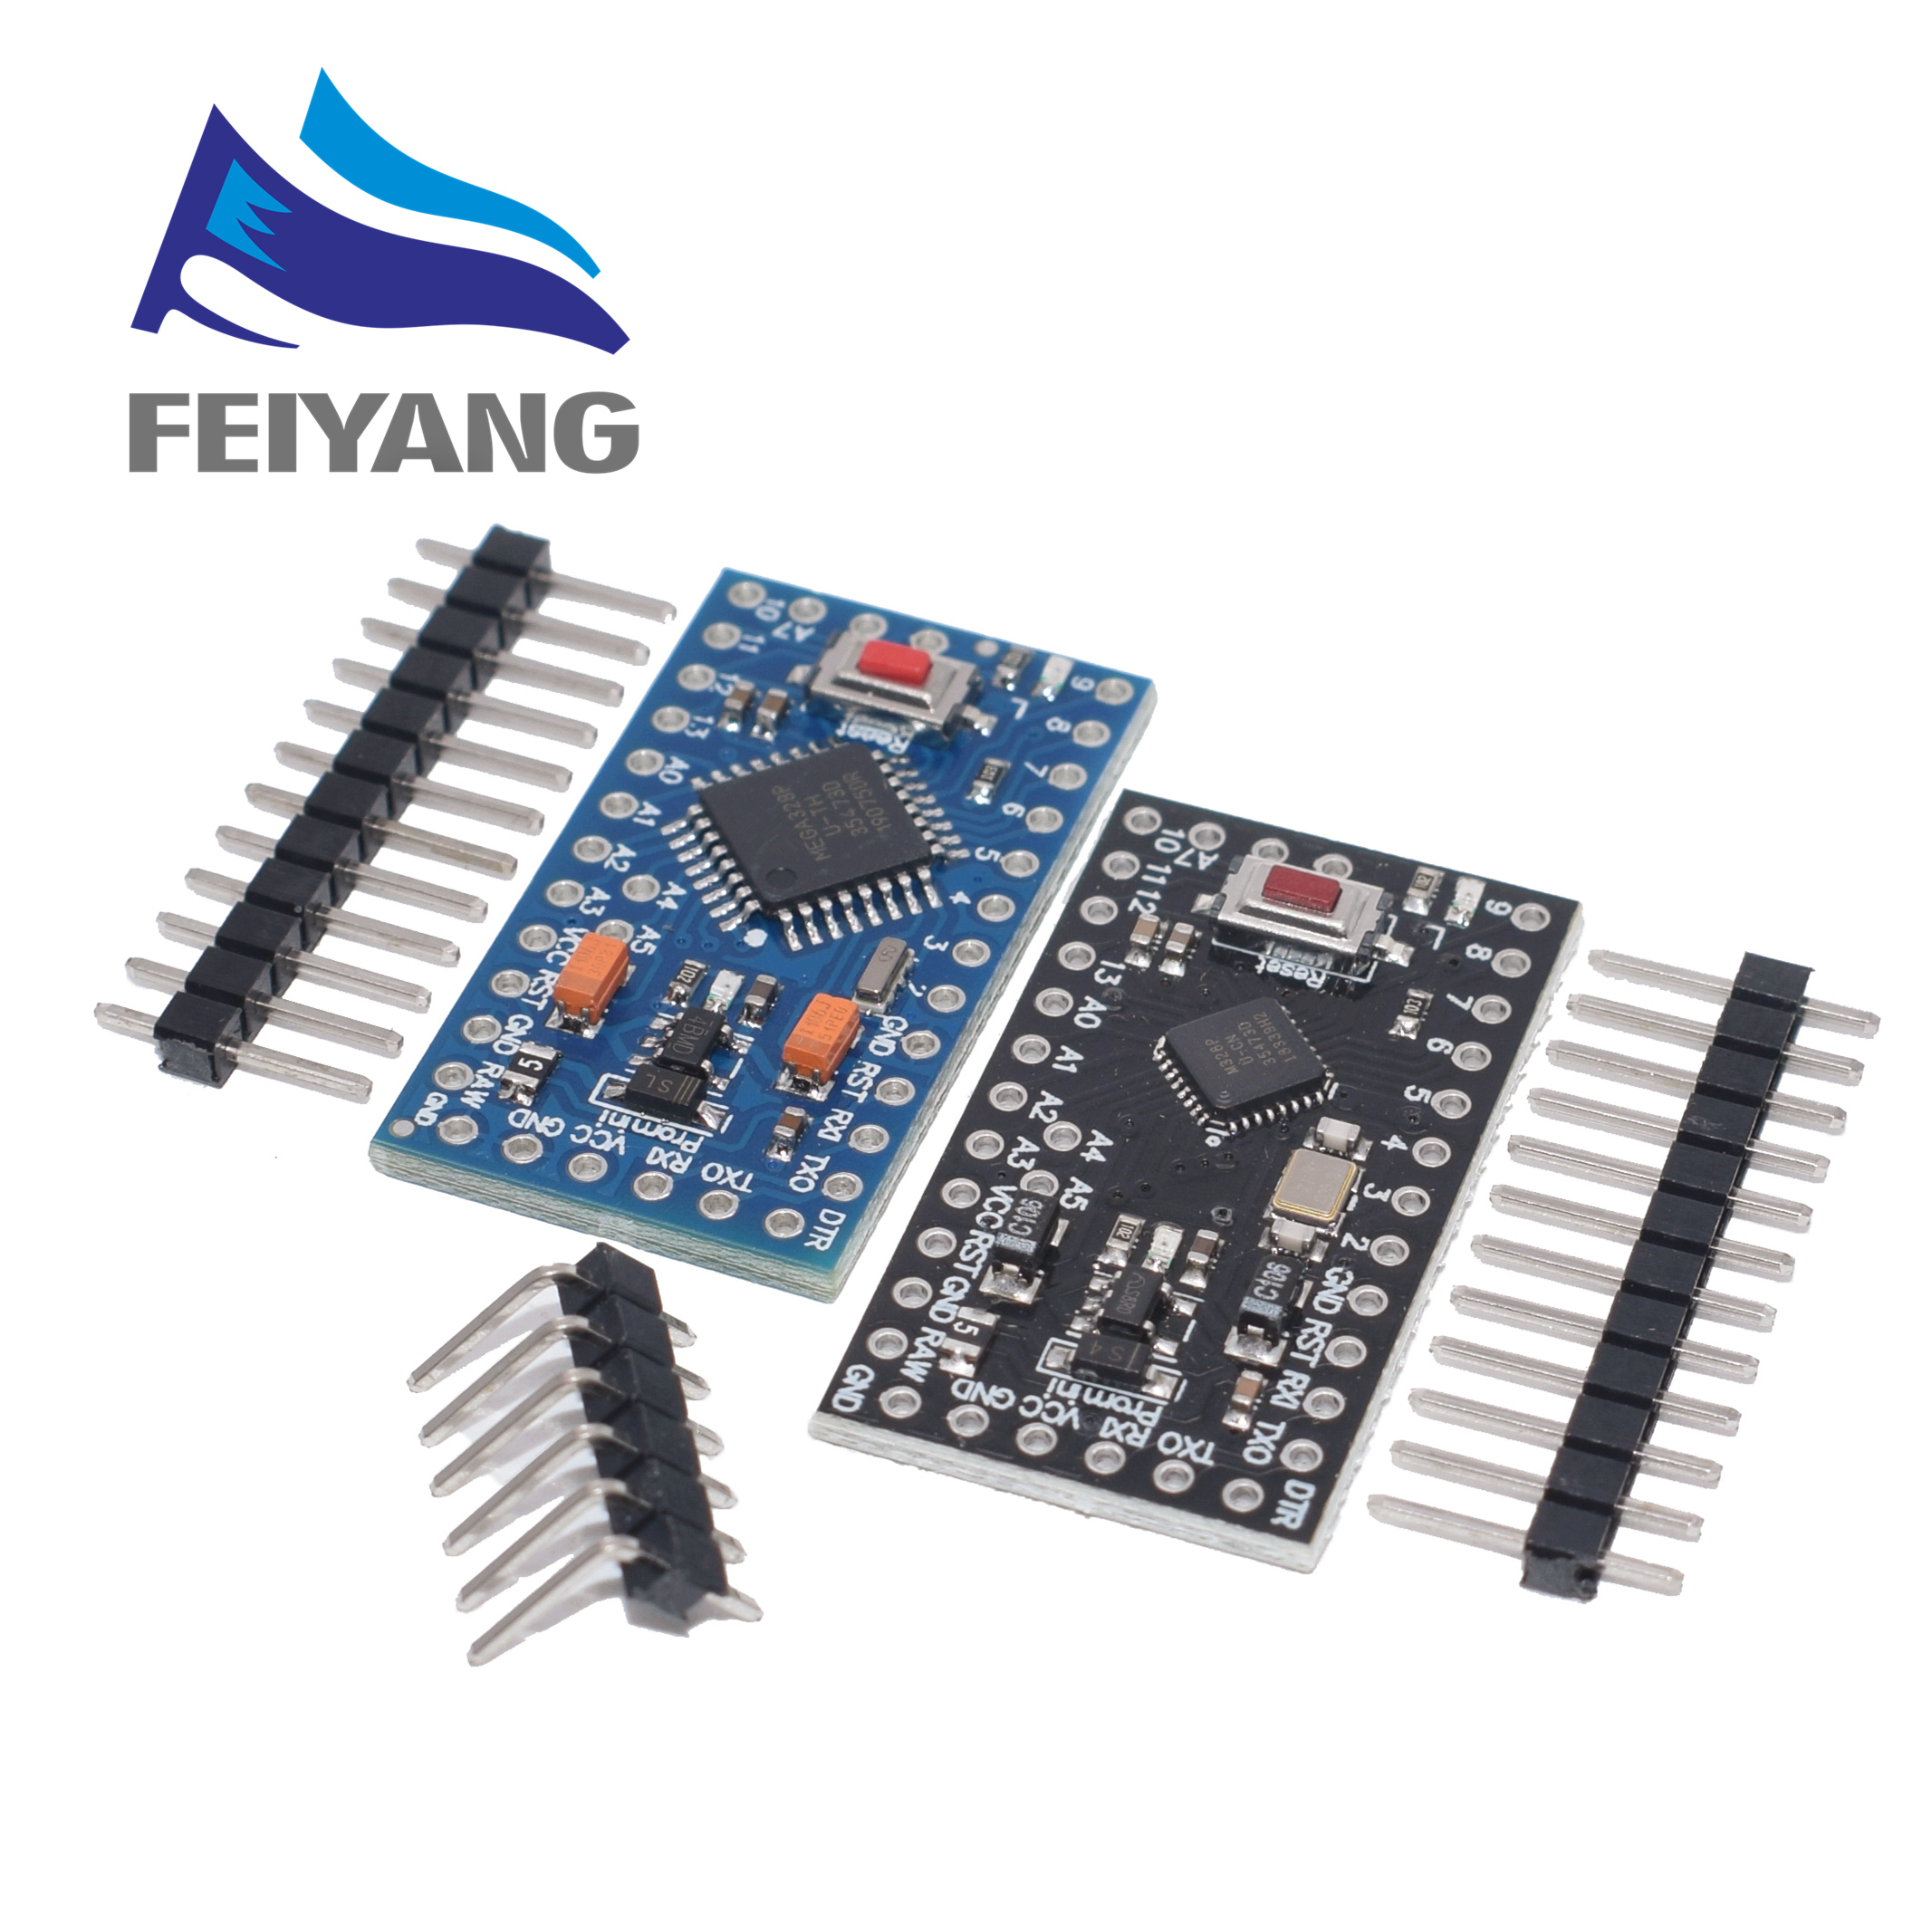 100PCS With the bootloader ATMEGA328P Pro Mini 5V 16MHz 3 3V 8Mhz 328 Mini ATMEGA328 5V